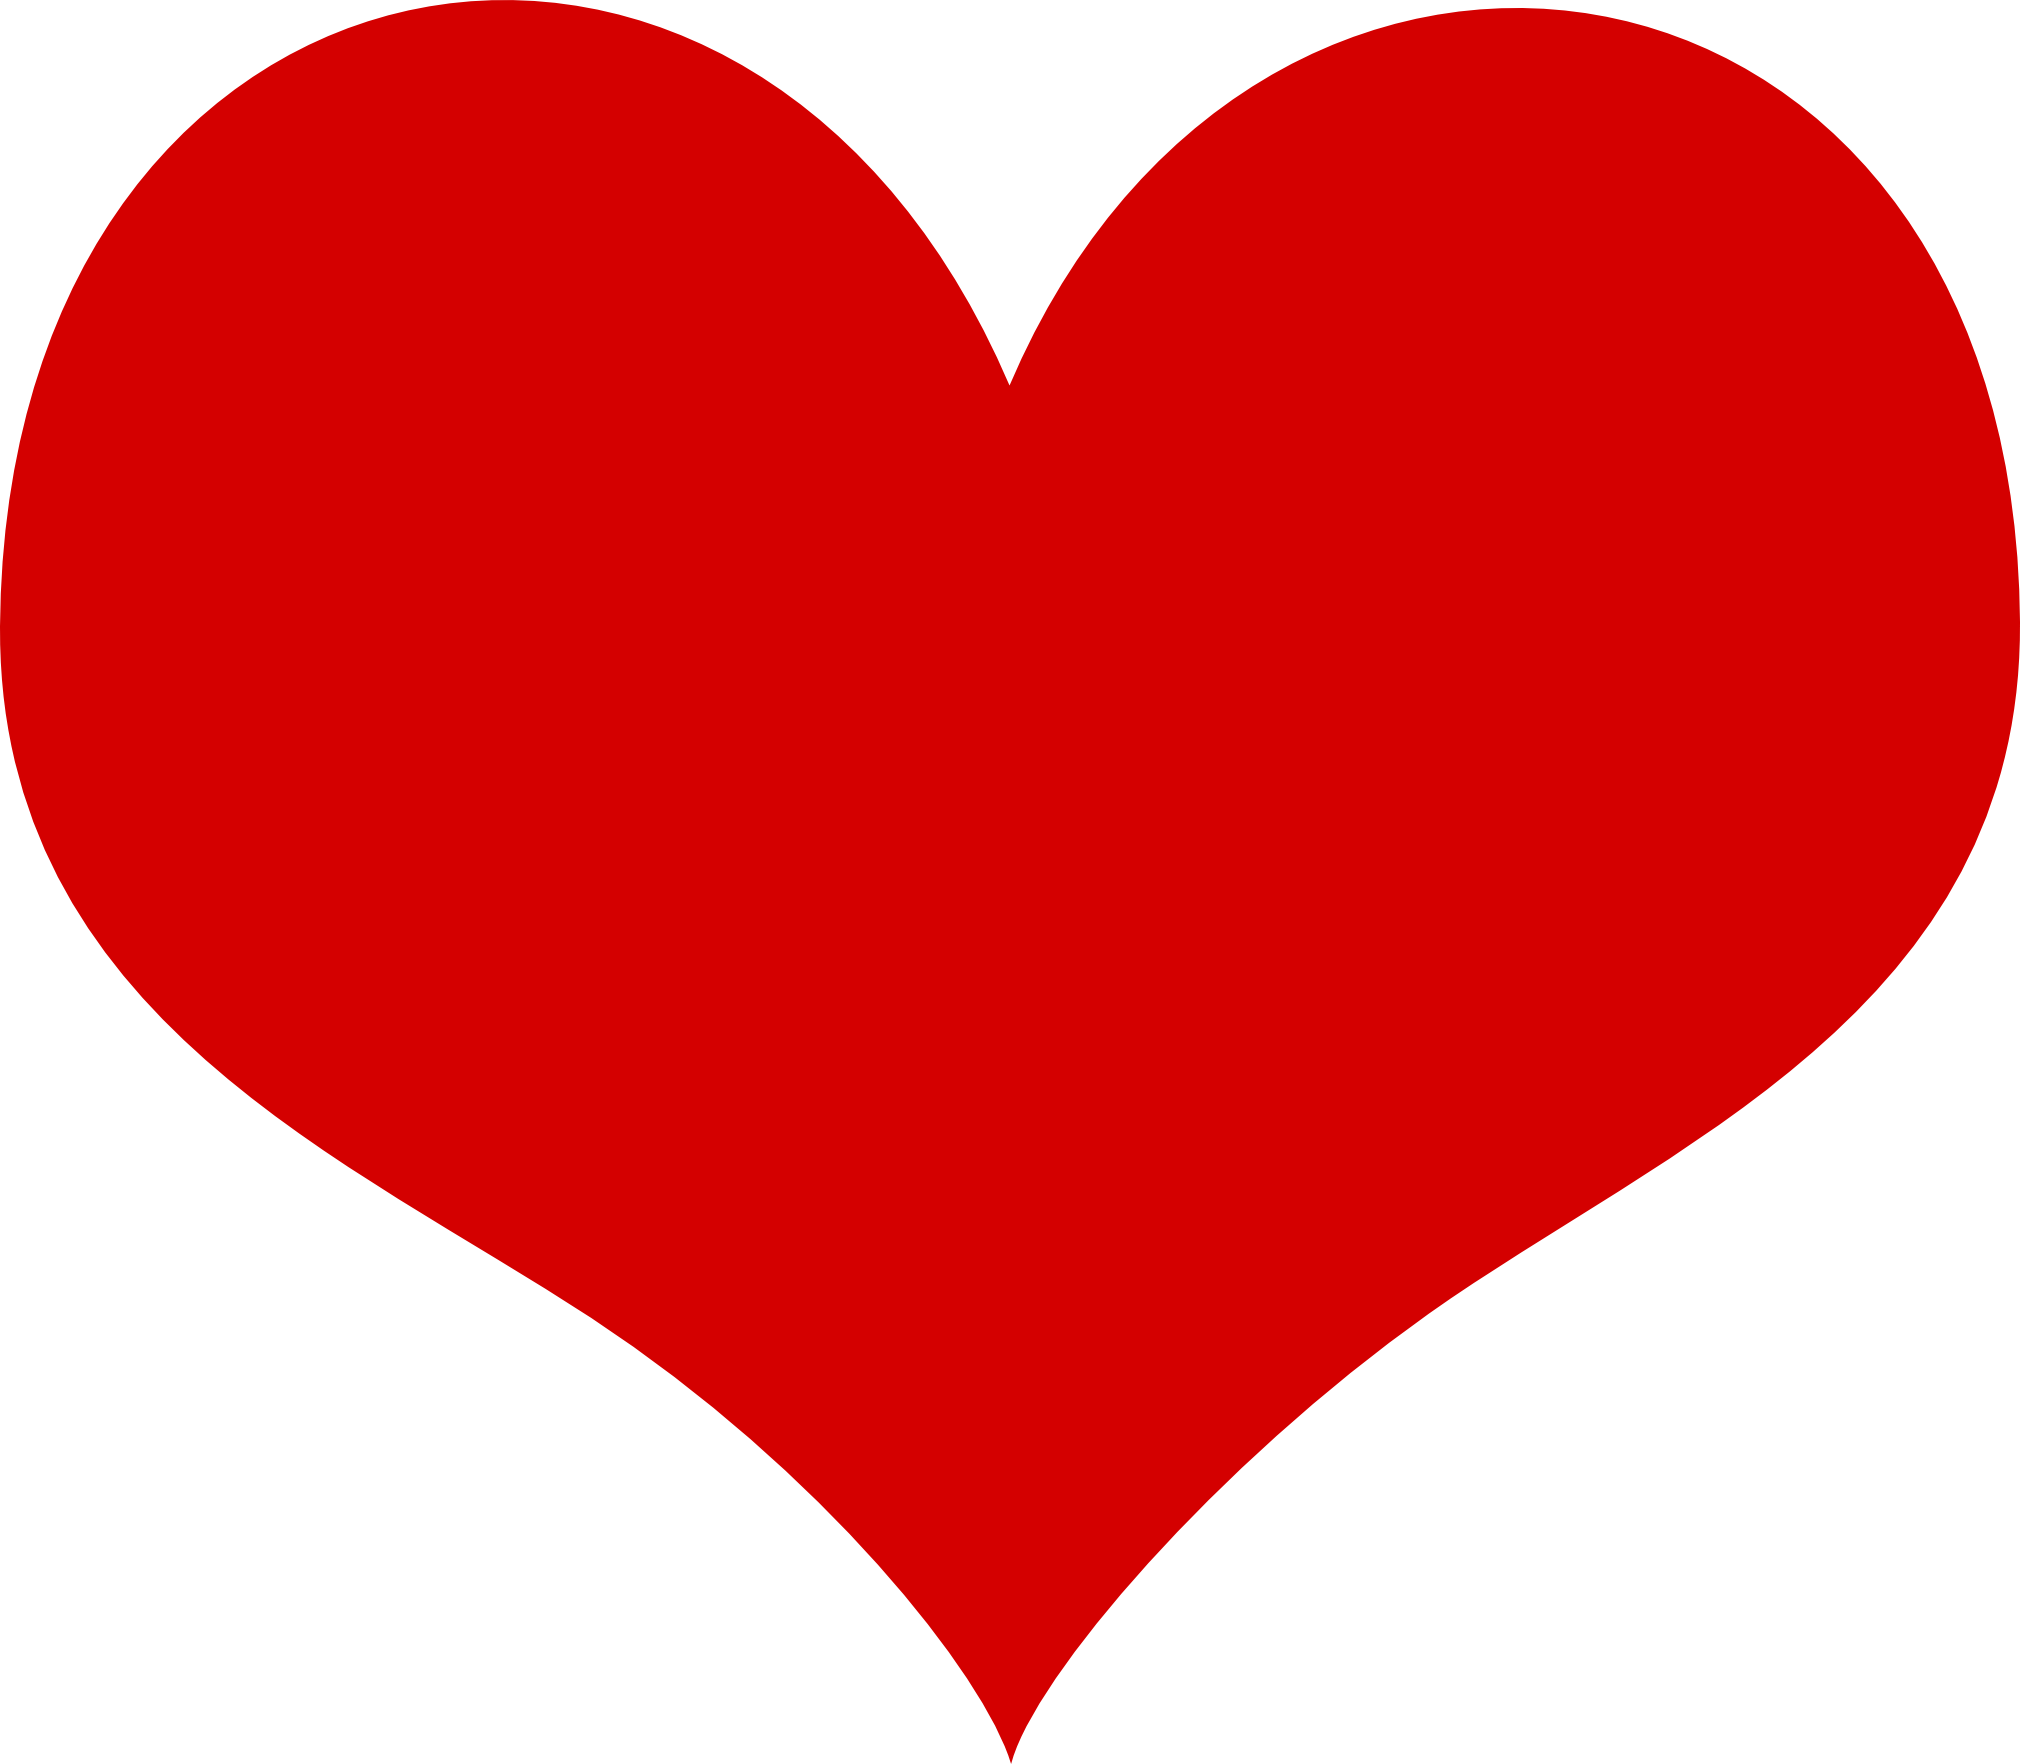 Hearts transparent png. Heart clipart panda free